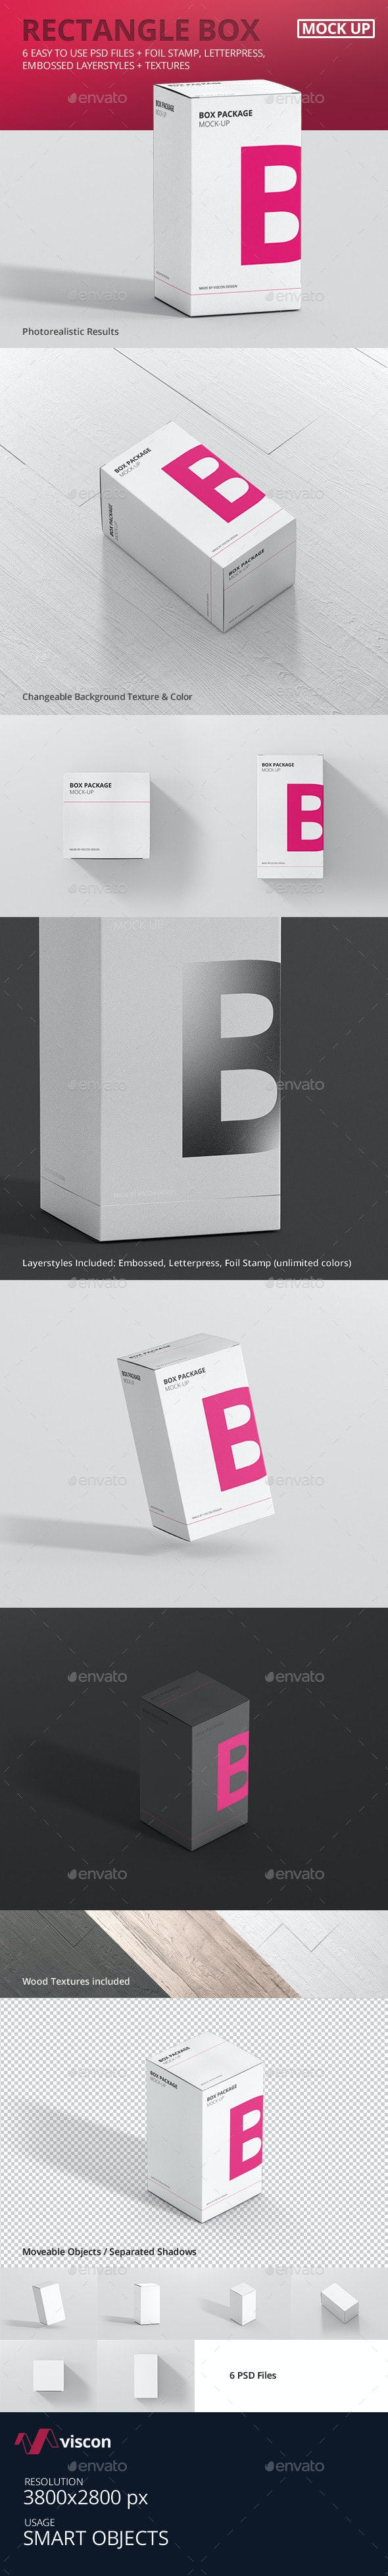 Package Box Mock-Up - Rectangle - Miscellaneous Packaging